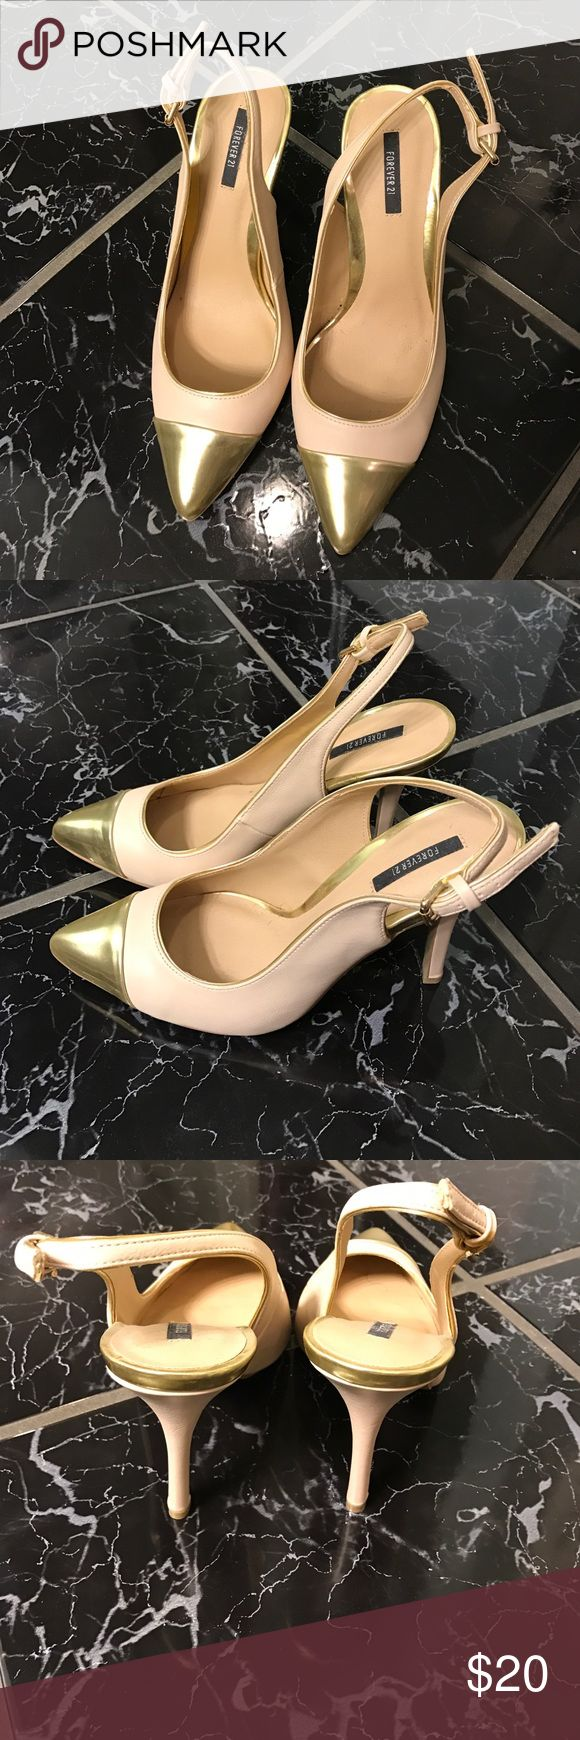 Gold Cap Toe Slingbacks Gold Cap Toe Slingbacks Forever 21 Shoes Heels